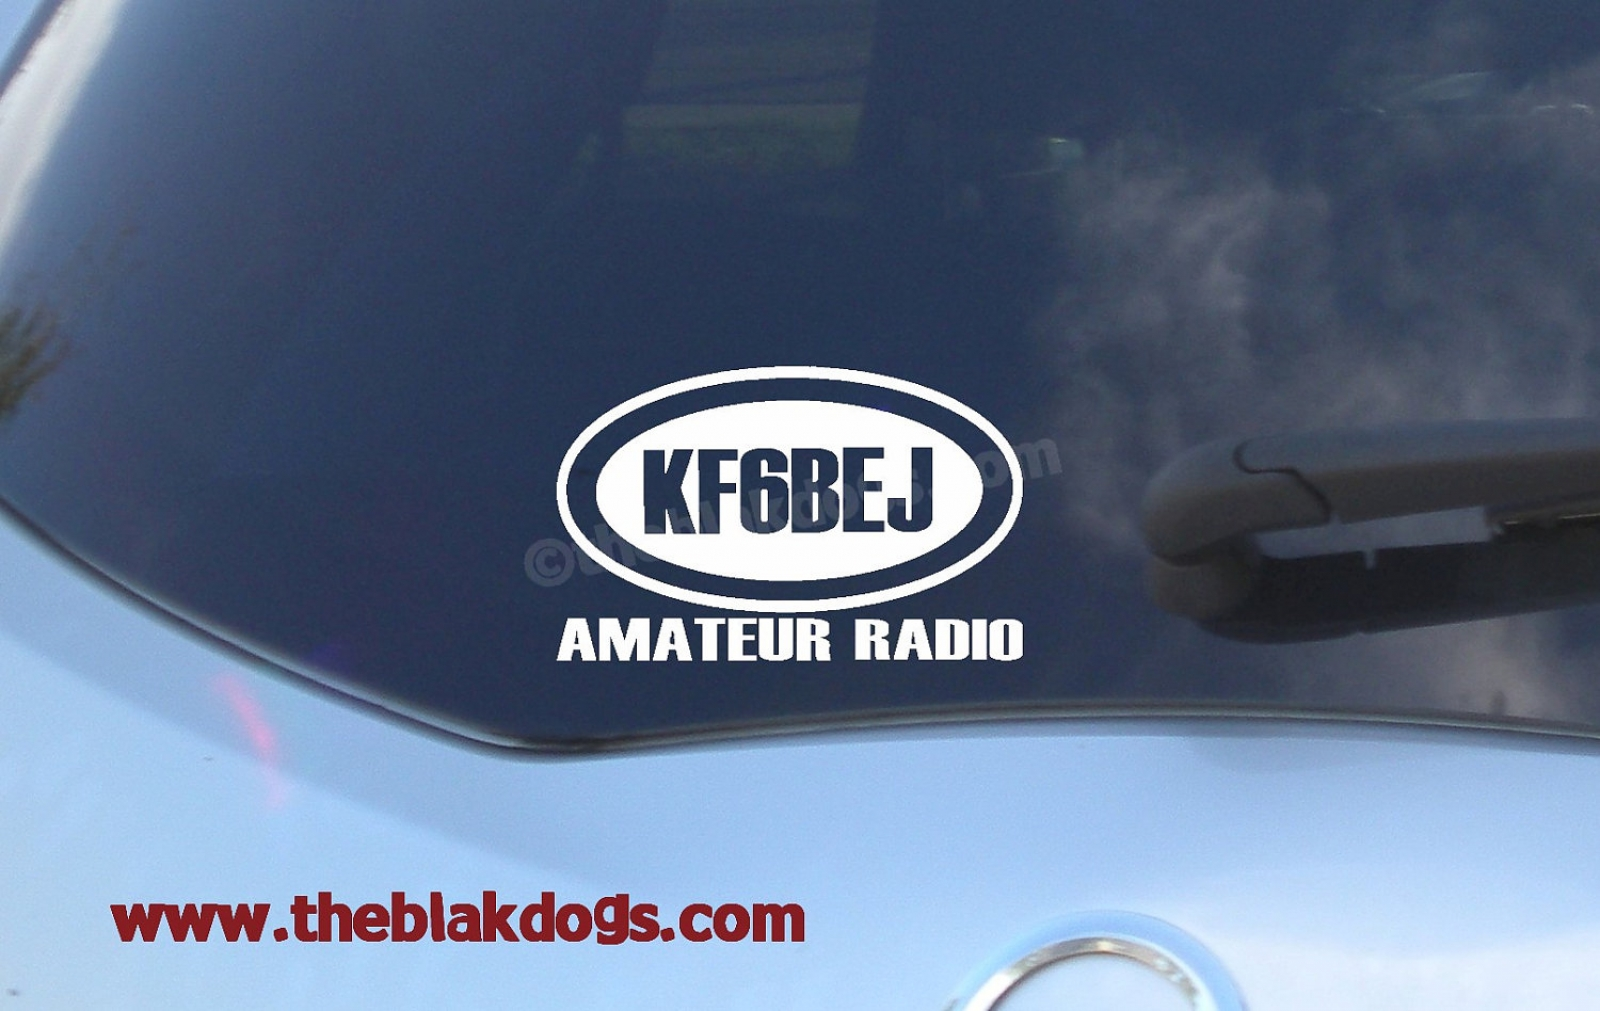 Know, that availible amateur callsigns pity